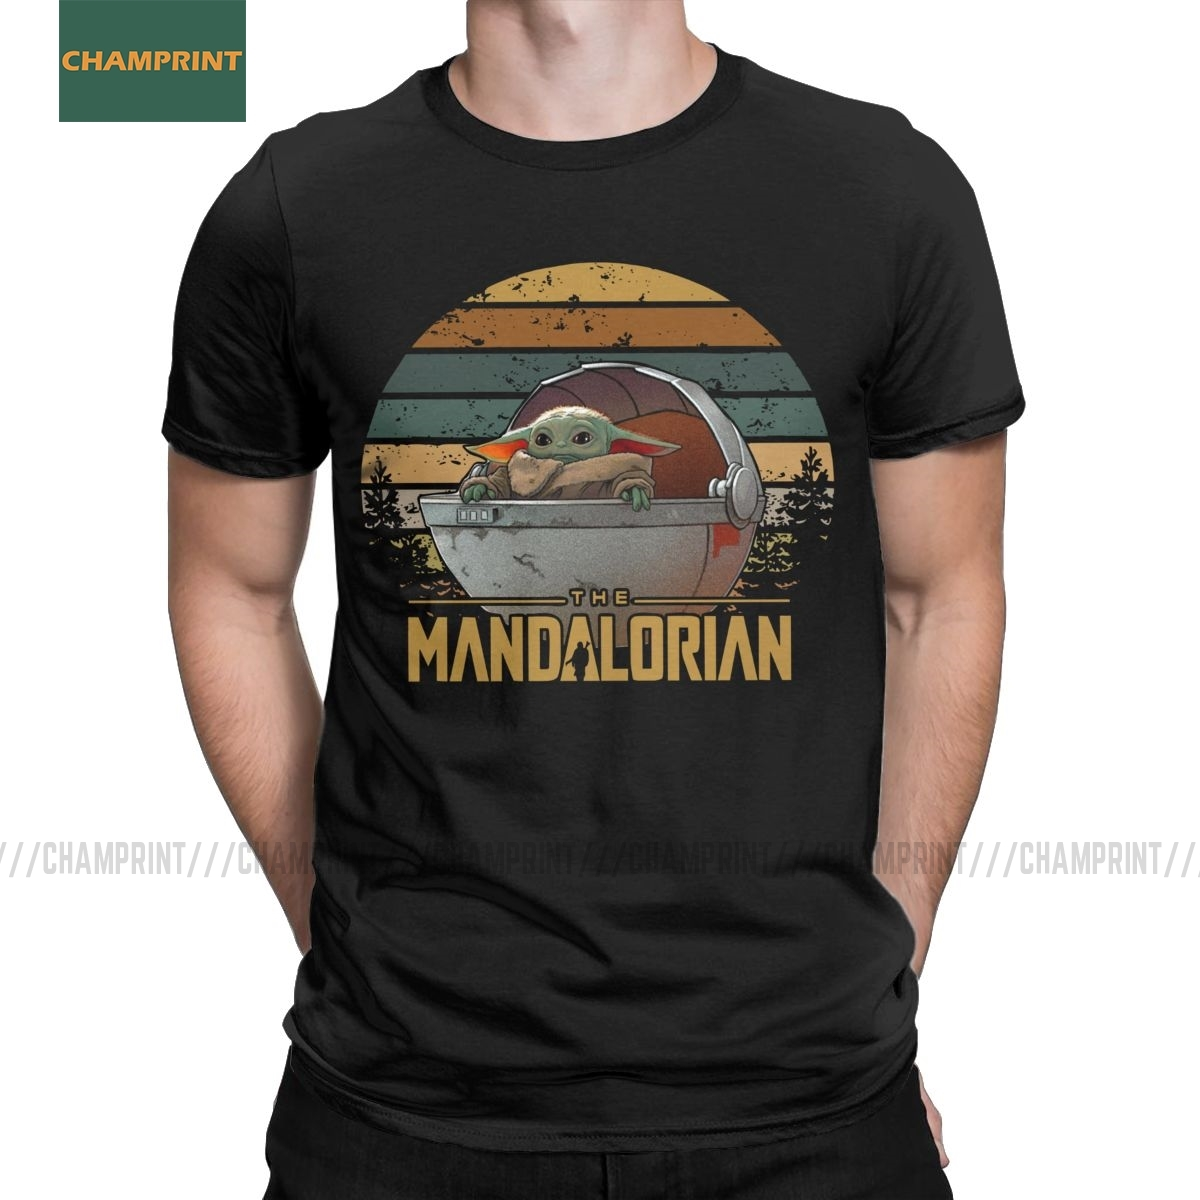 Men T-Shirts Baby Yoda The Mandalorian T Shirt Funny Cotton Tee Shirt Short Sleeve Star Wars Seagulls Jedi Fett Crewneck Clothes